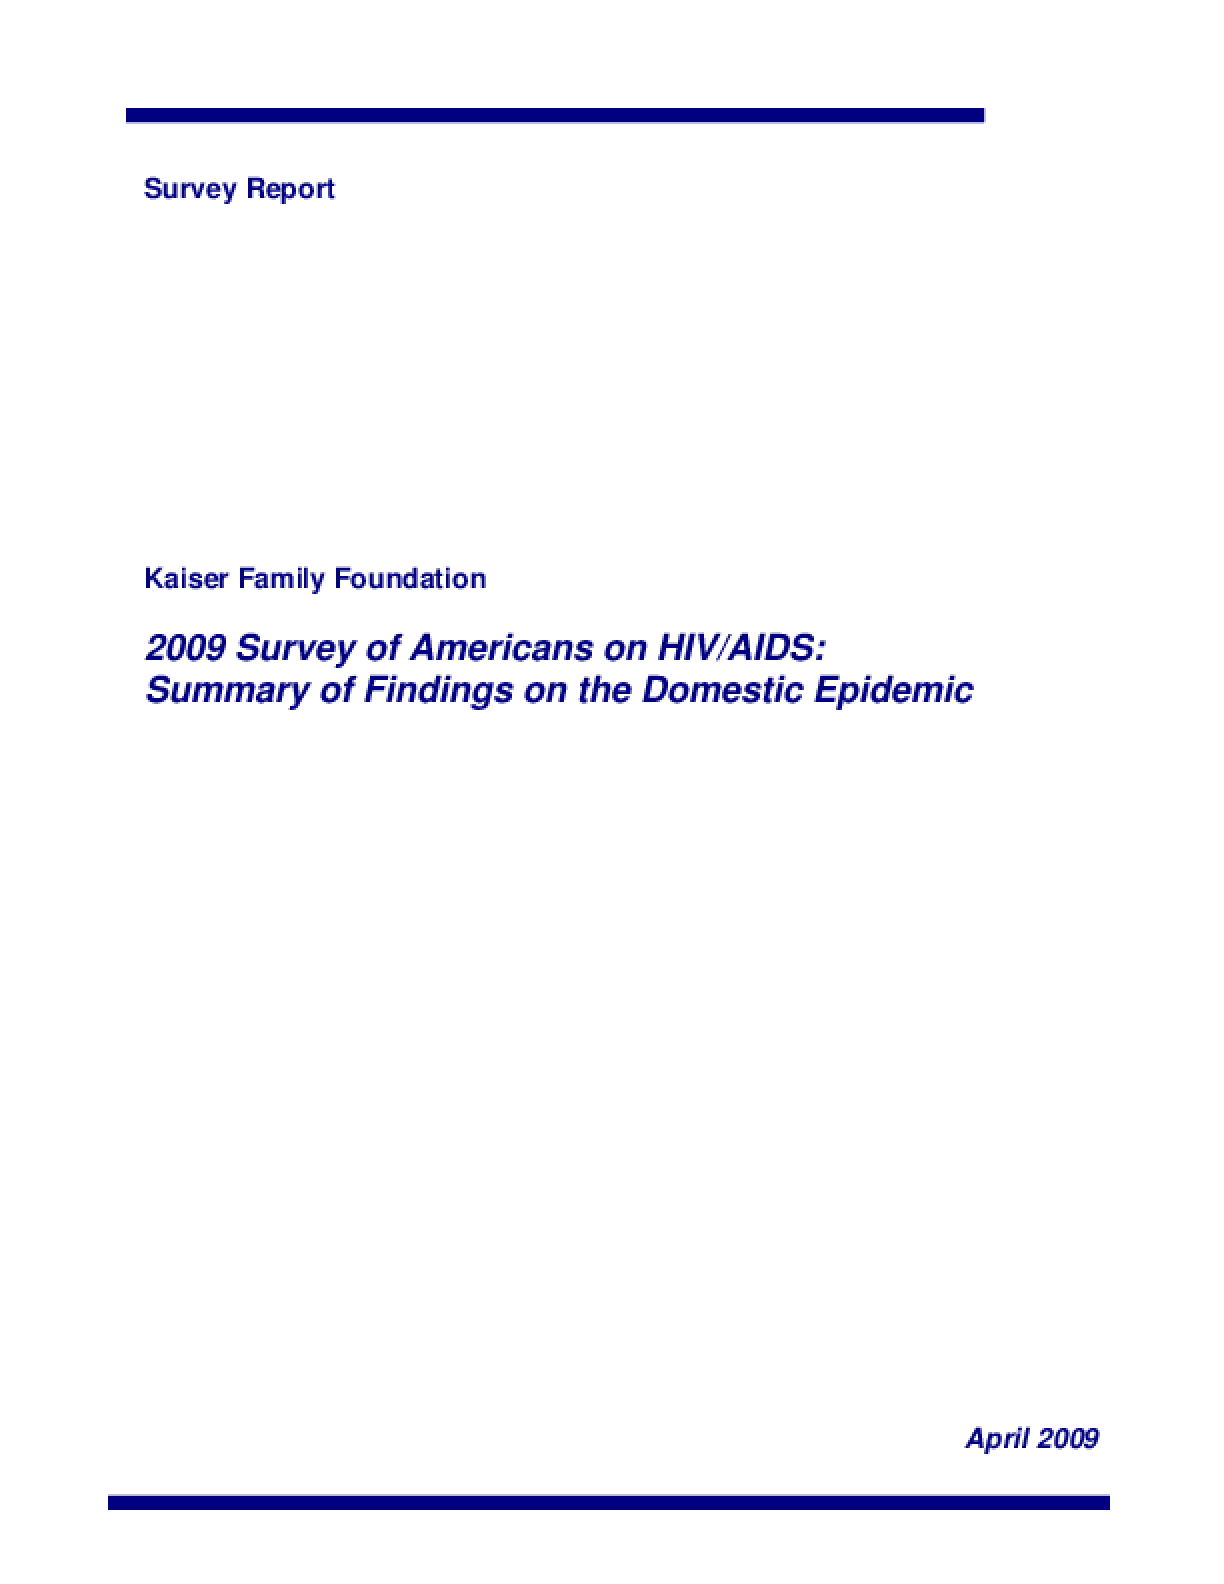 2009 Survey of Americans on HIV/AIDS: Summary of Findings on the Domestic Epidemic